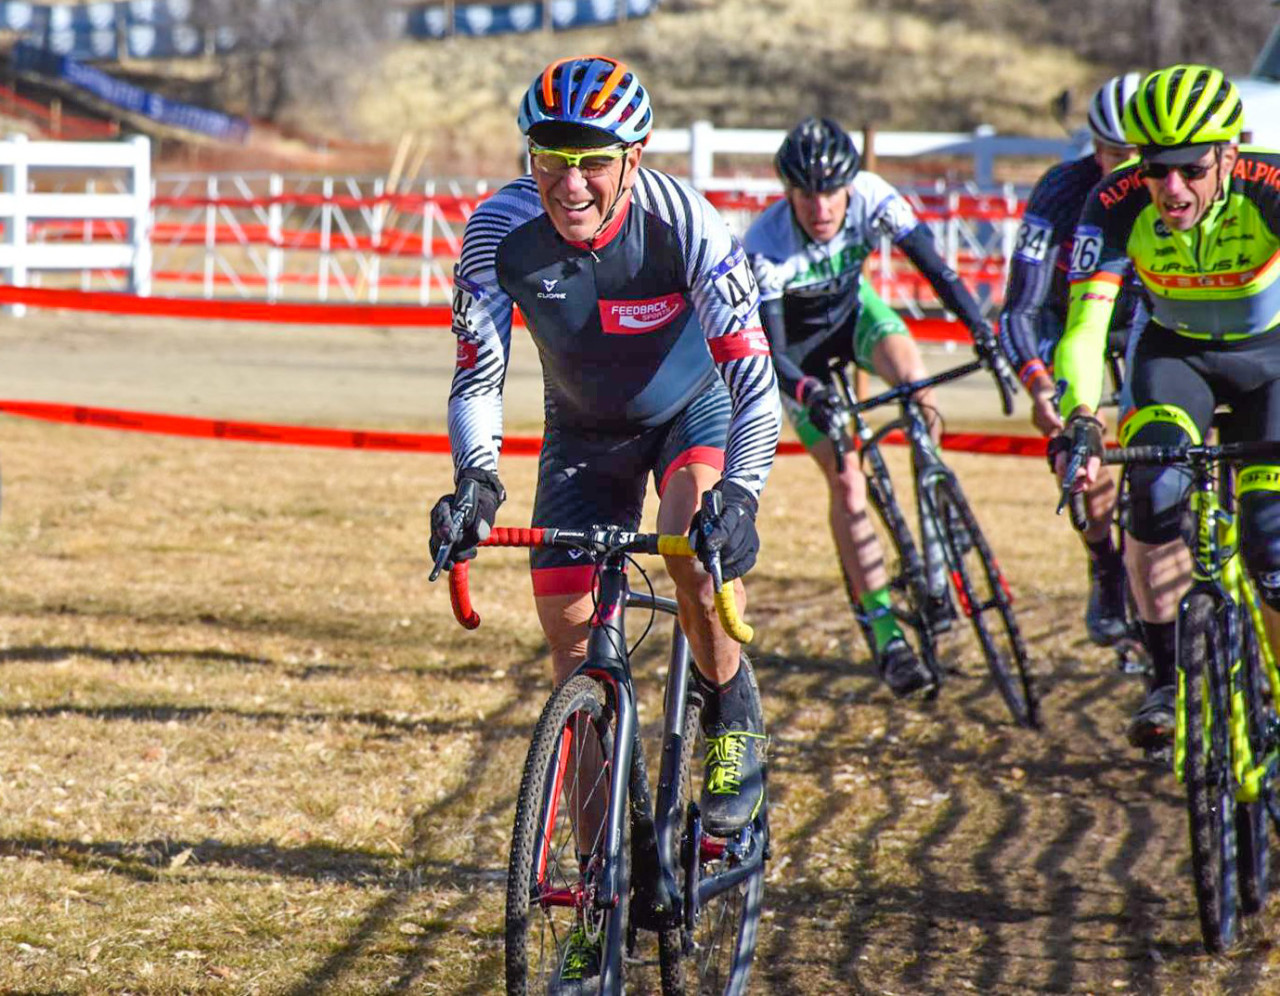 Taking time for rest has helped Waldman feel stronger when he does race. 2018 Reno Cyclocross Nationals. photo: courtesy